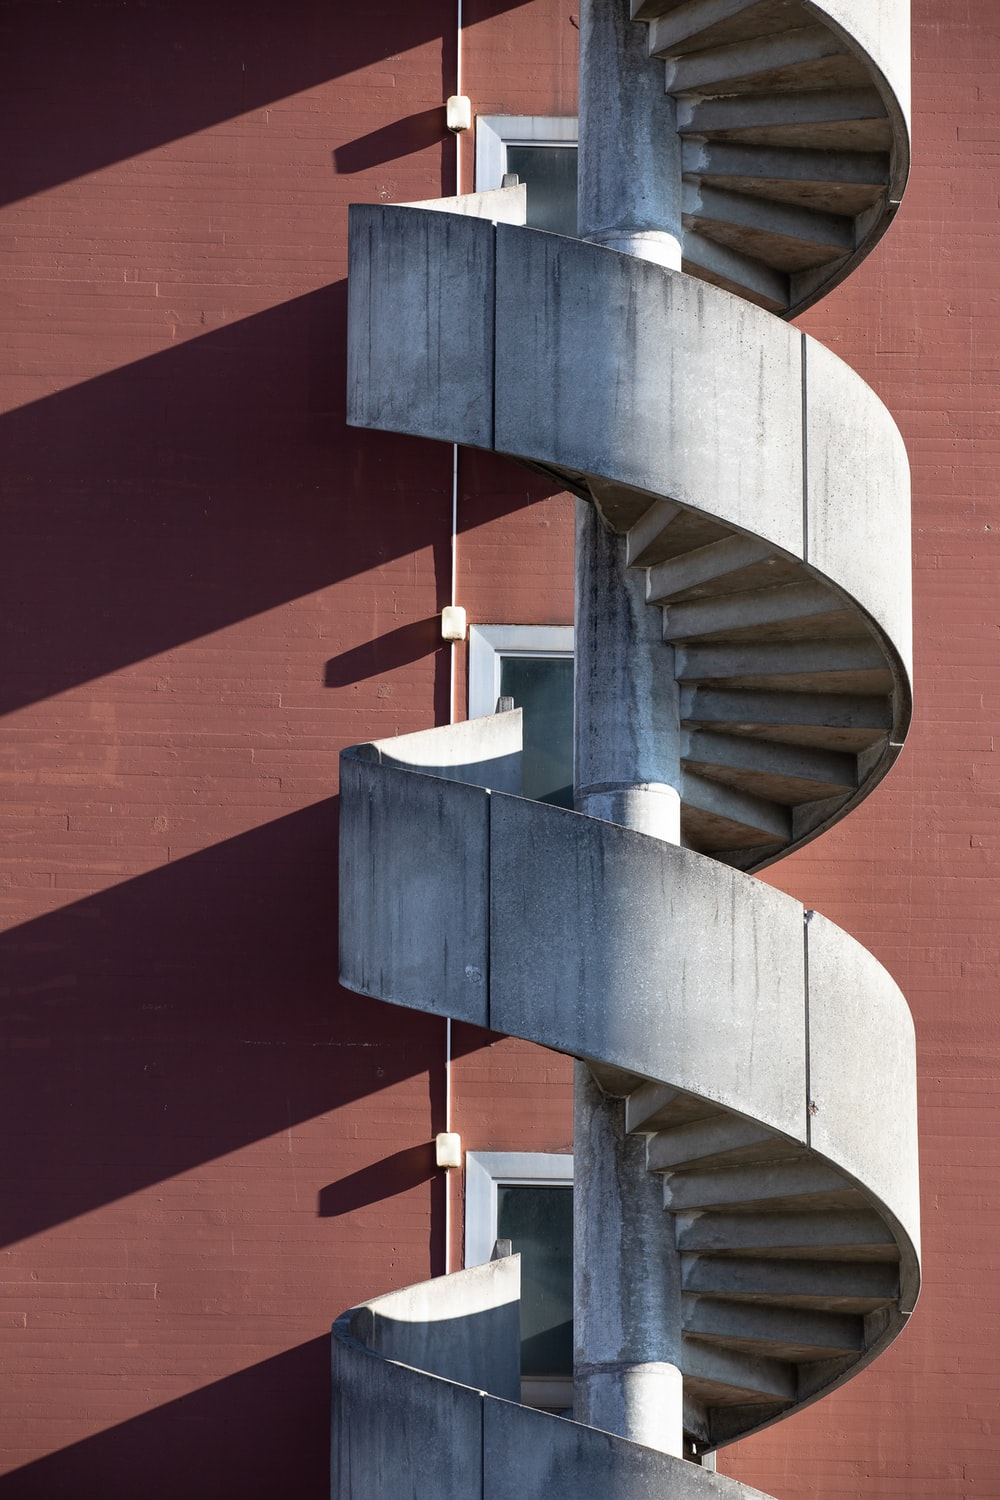 gray spiral stairs tower